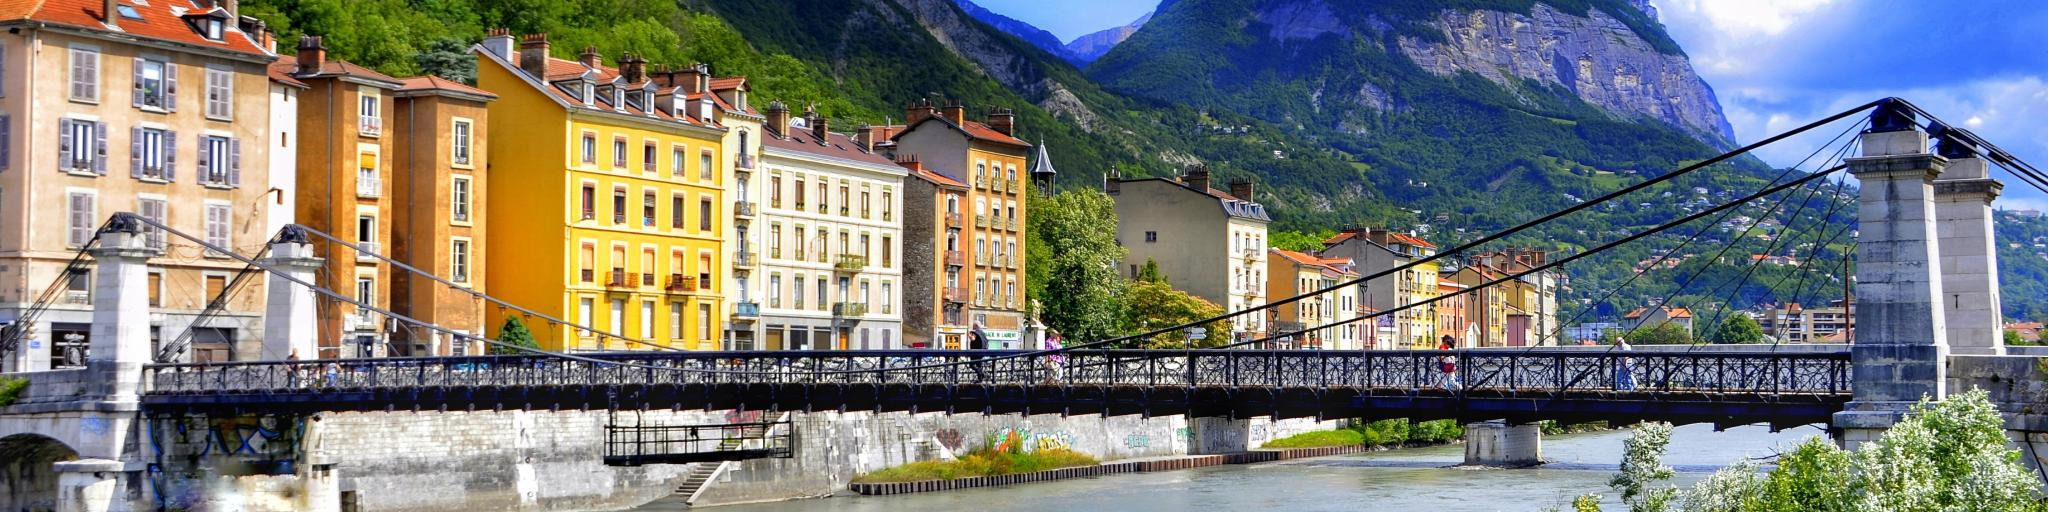 A view of a bridge over the river in Grenoble with colourful houses and mountains in the background